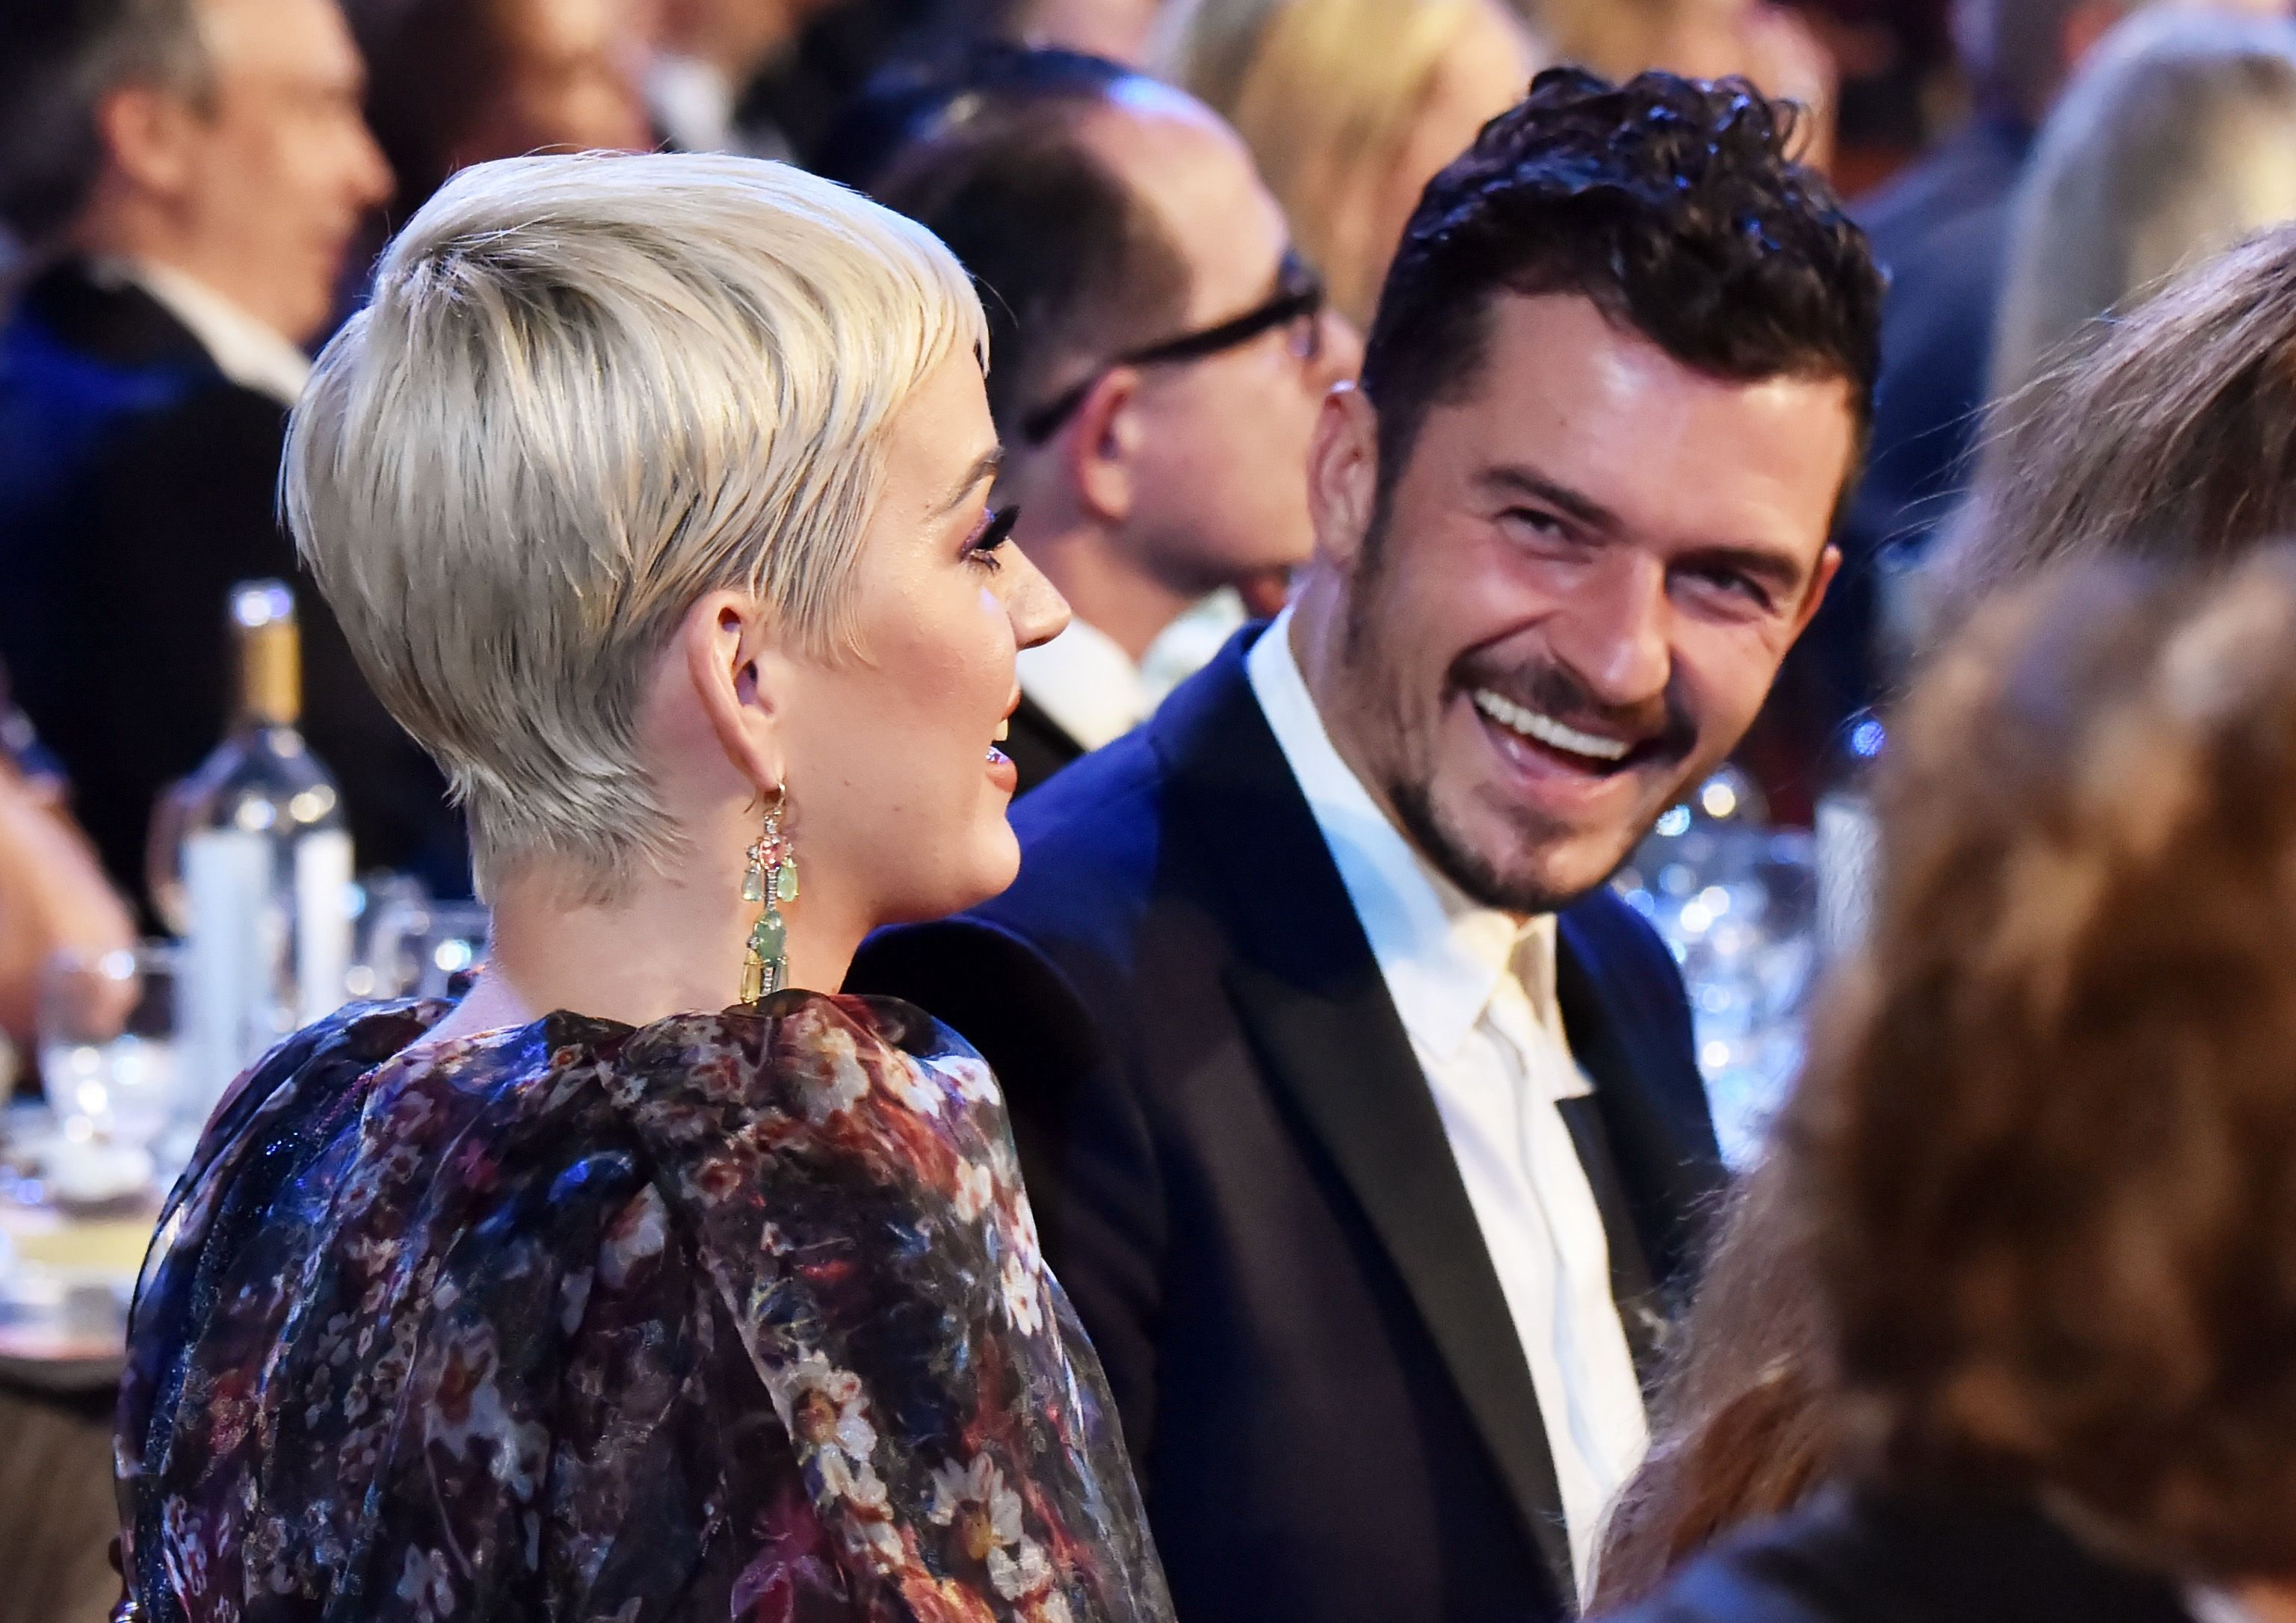 Katy Perry (L) and Orlando Bloom attend MusiCares Person of the Year honoring Dolly Parton / Getty Images